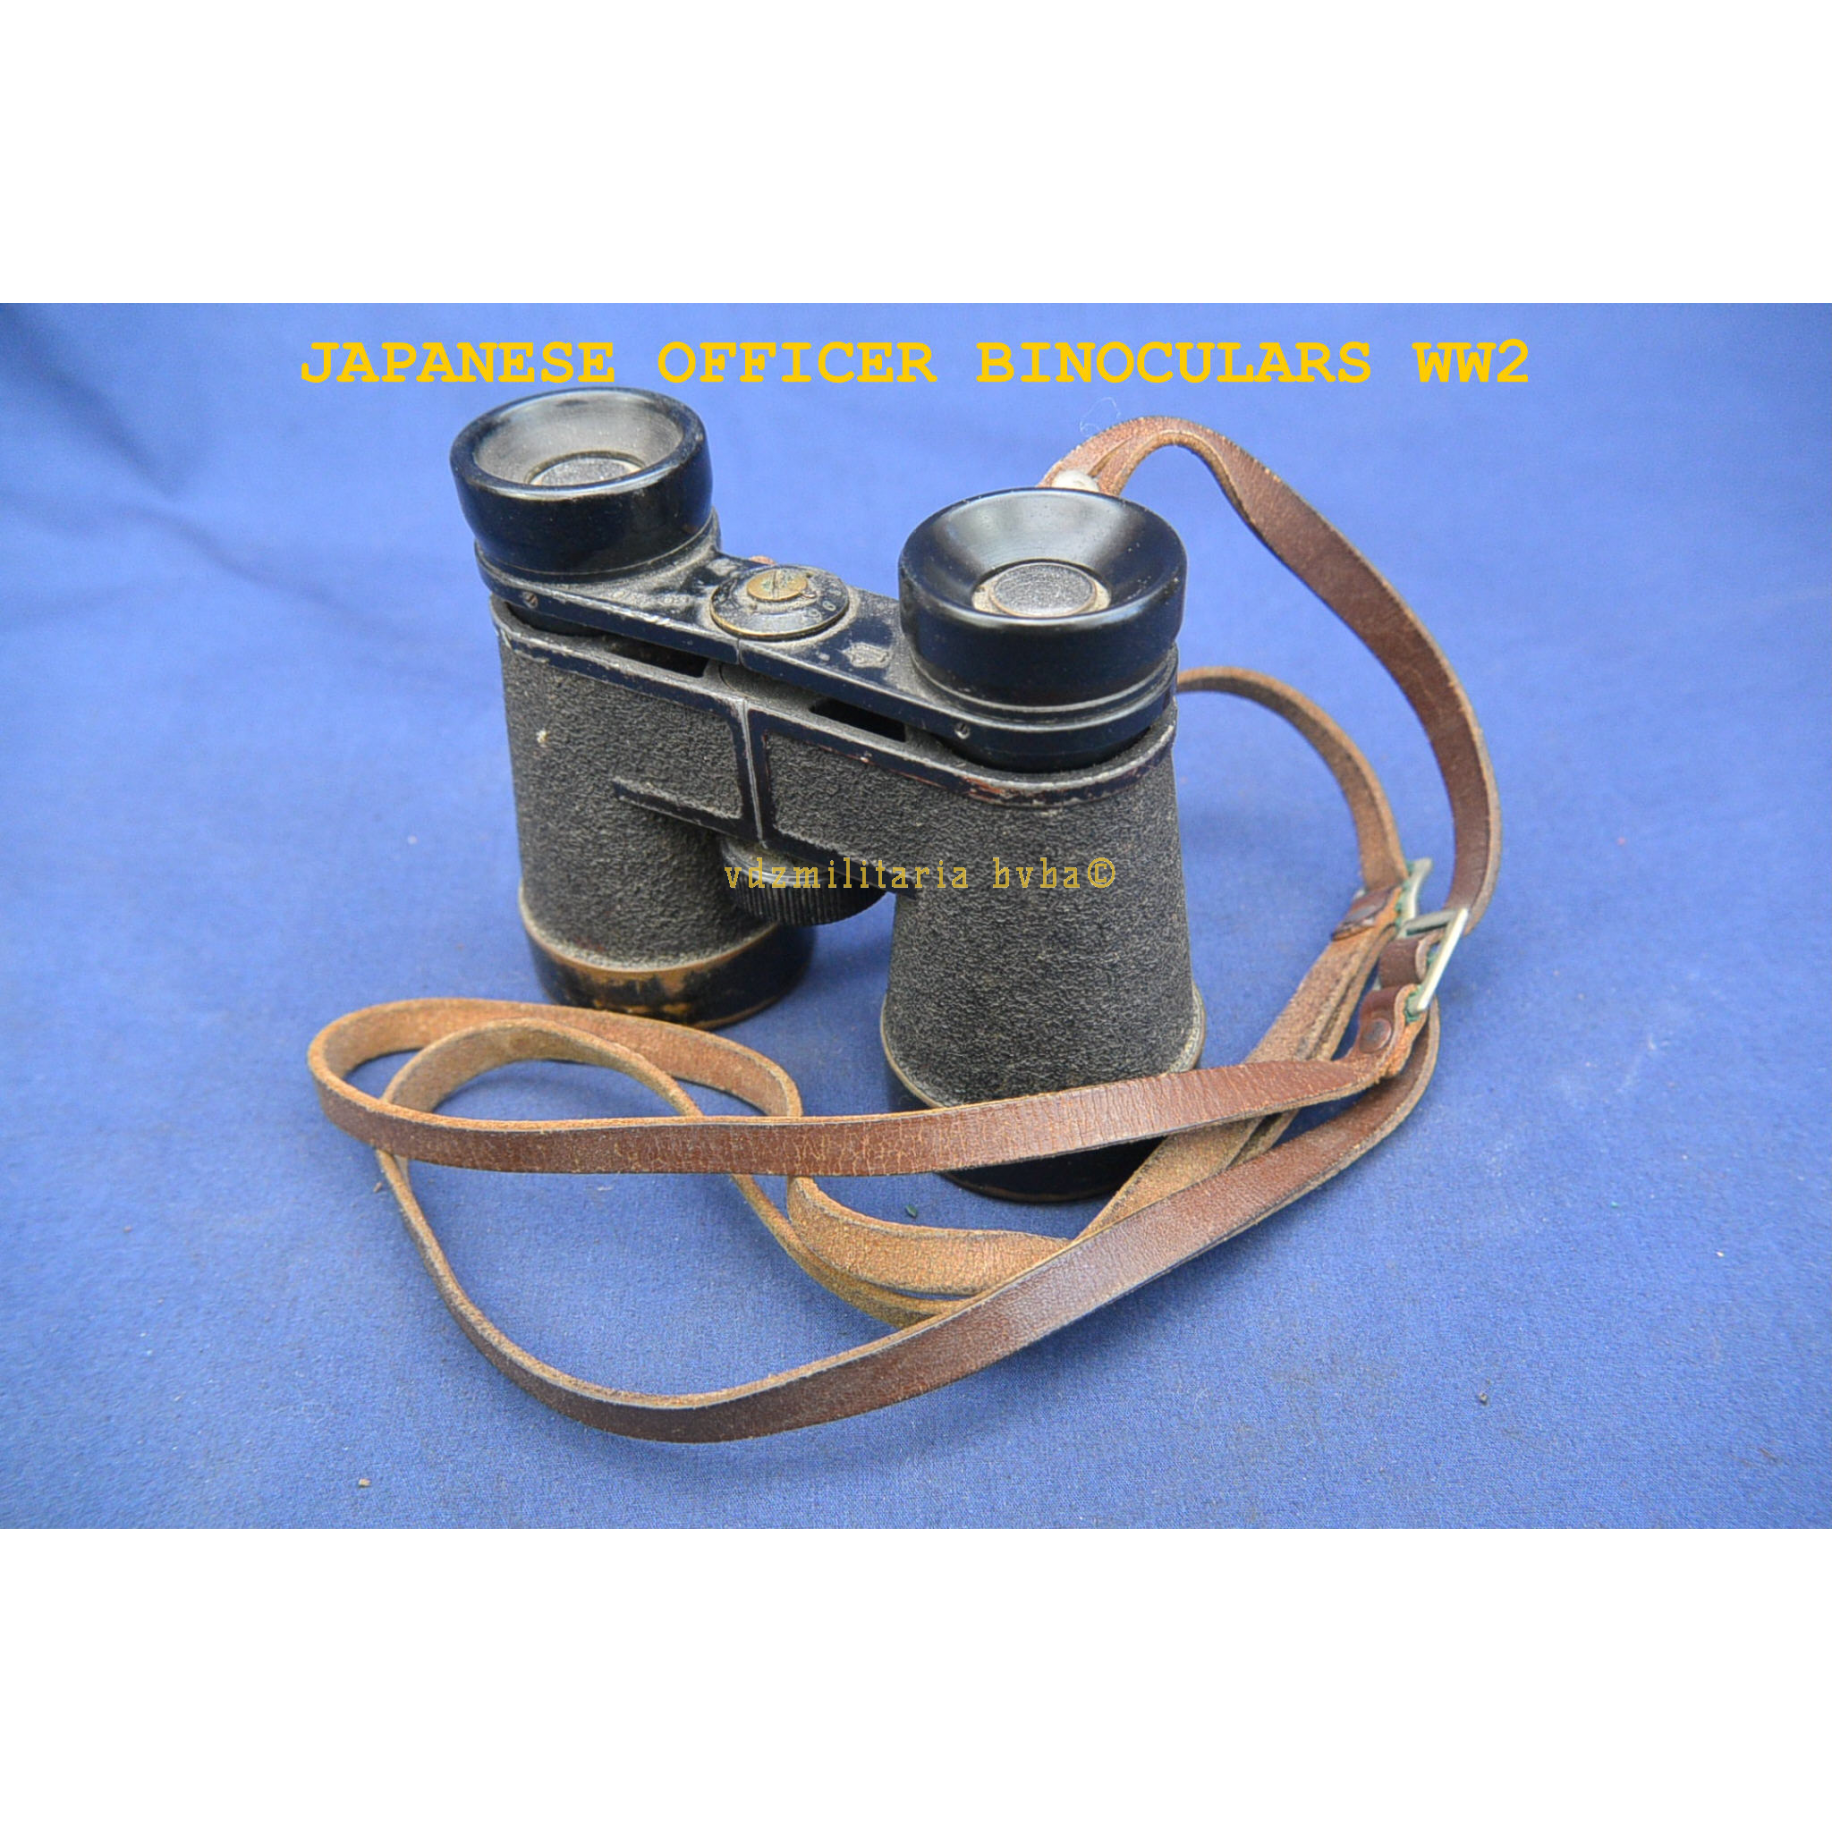 BINOCULARS OF A WW2 JAPANESE OFFICER